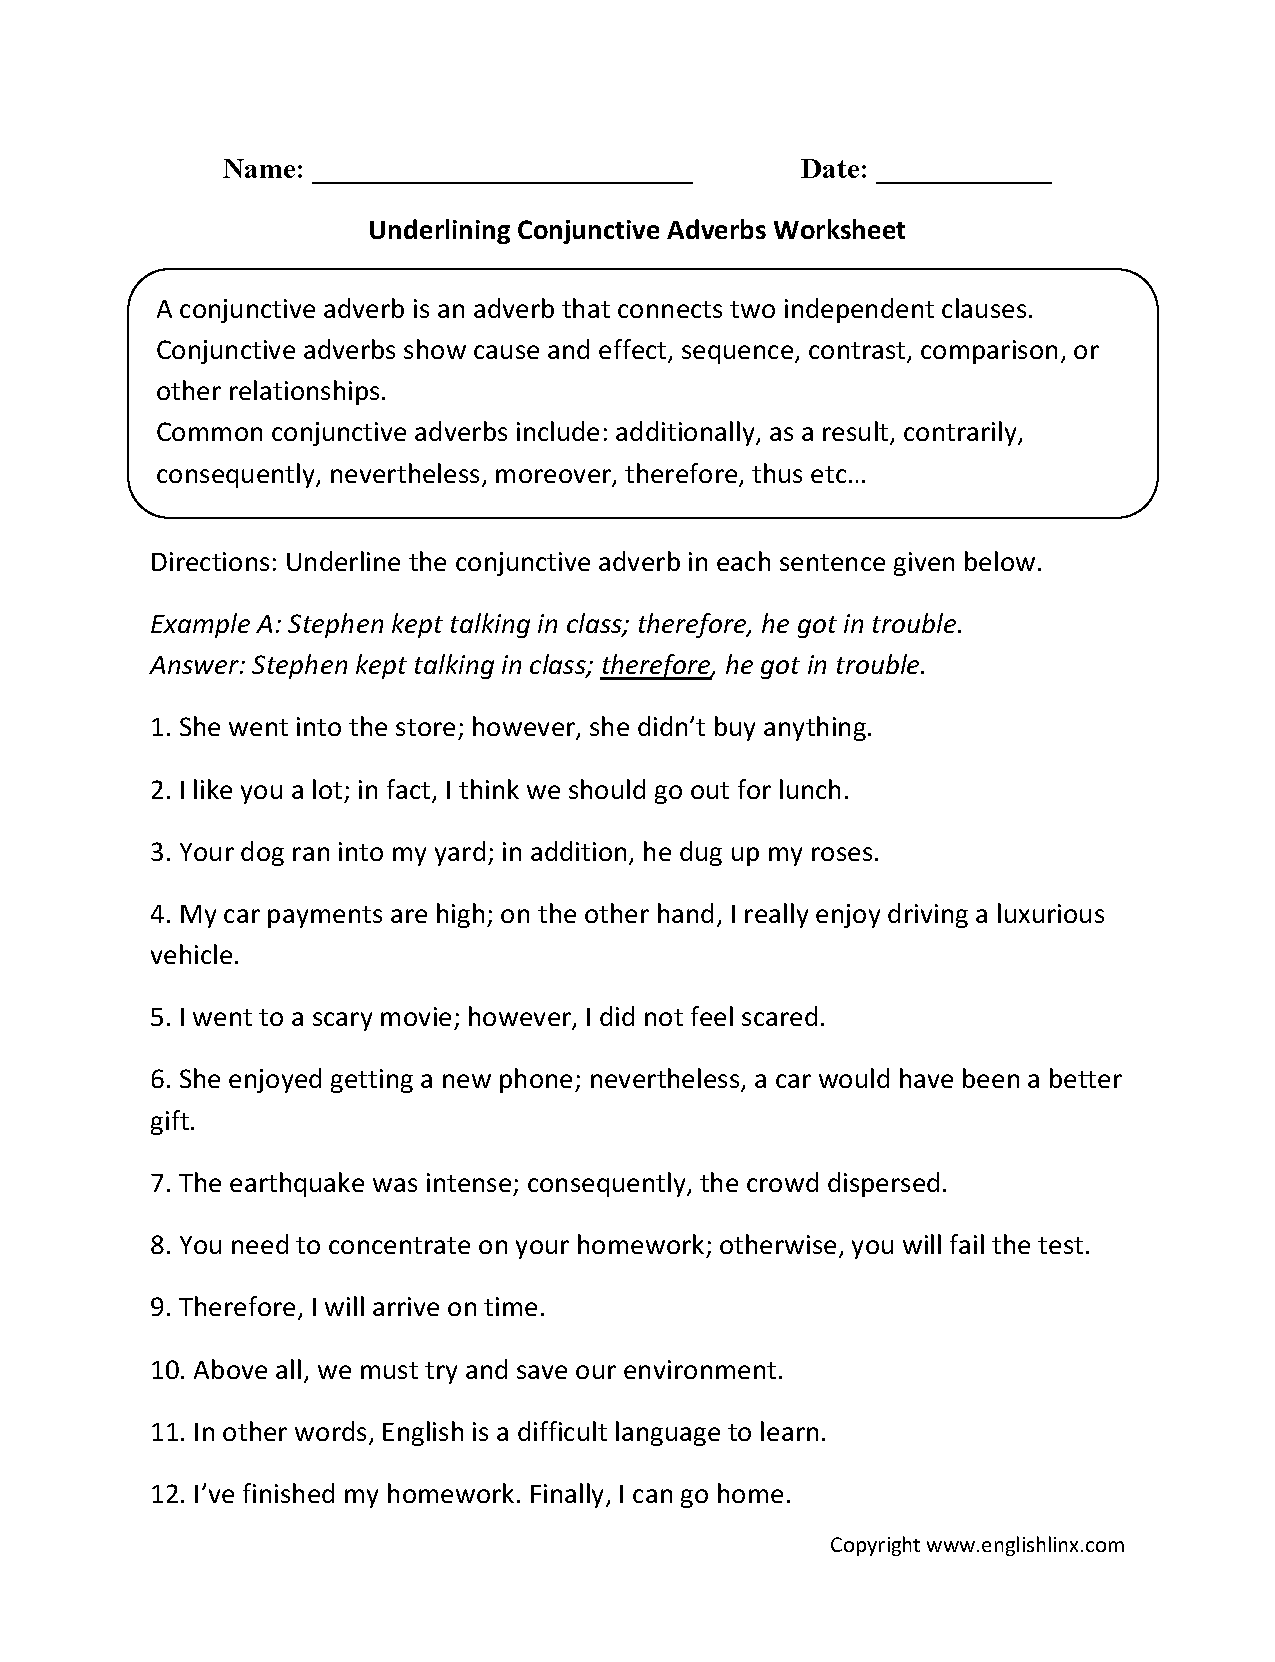 Weirdmailus  Sweet Englishlinxcom  Conjunctions Worksheets With Marvelous Worksheet With Beauteous Multiplying And Dividing Rational Expressions Worksheet Also W Worksheet In Addition Letter K Worksheets And Anxiety Worksheets As Well As Abc Order Worksheets Additionally Dilutions Worksheet From Englishlinxcom With Weirdmailus  Marvelous Englishlinxcom  Conjunctions Worksheets With Beauteous Worksheet And Sweet Multiplying And Dividing Rational Expressions Worksheet Also W Worksheet In Addition Letter K Worksheets From Englishlinxcom